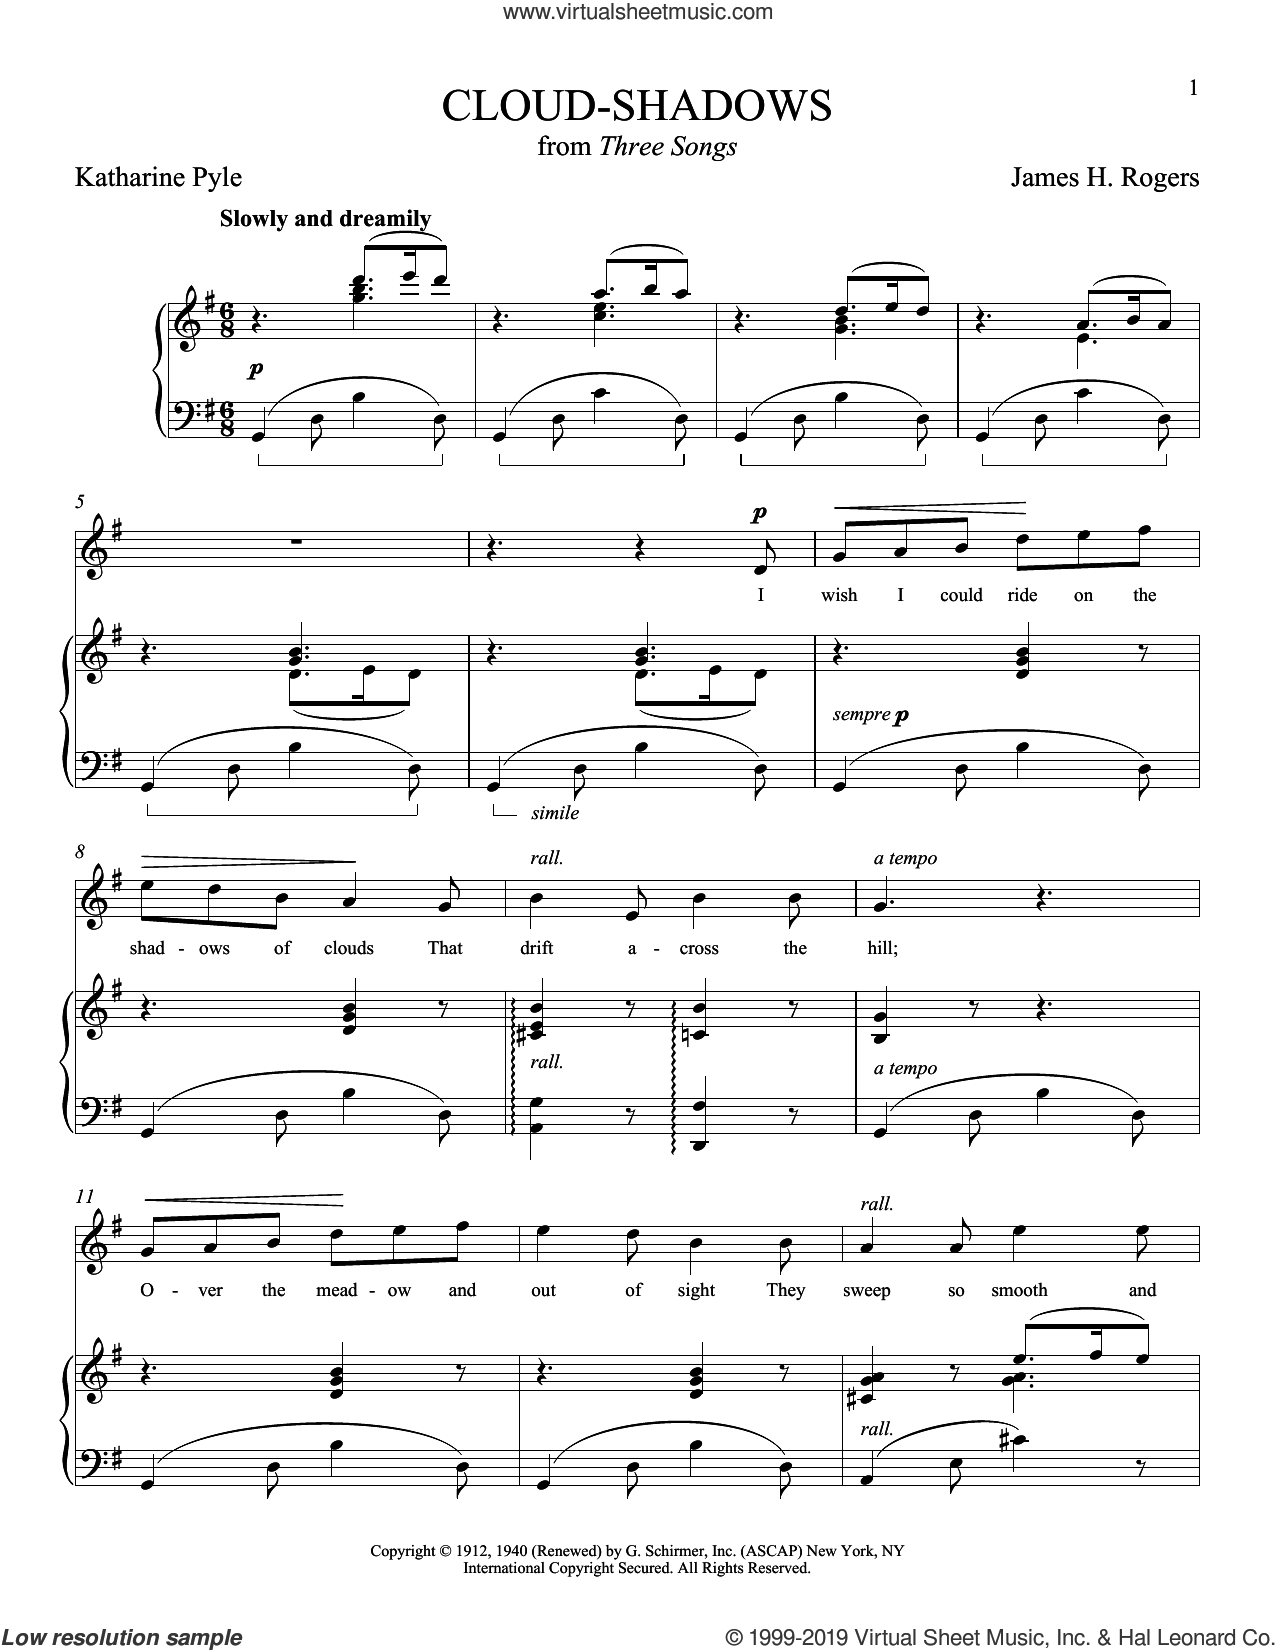 Cloud-Shadows sheet music for voice and piano (Soprano) by Katharine Pyle, Joan Frey Boytim and James H. Rogers, classical score, intermediate skill level